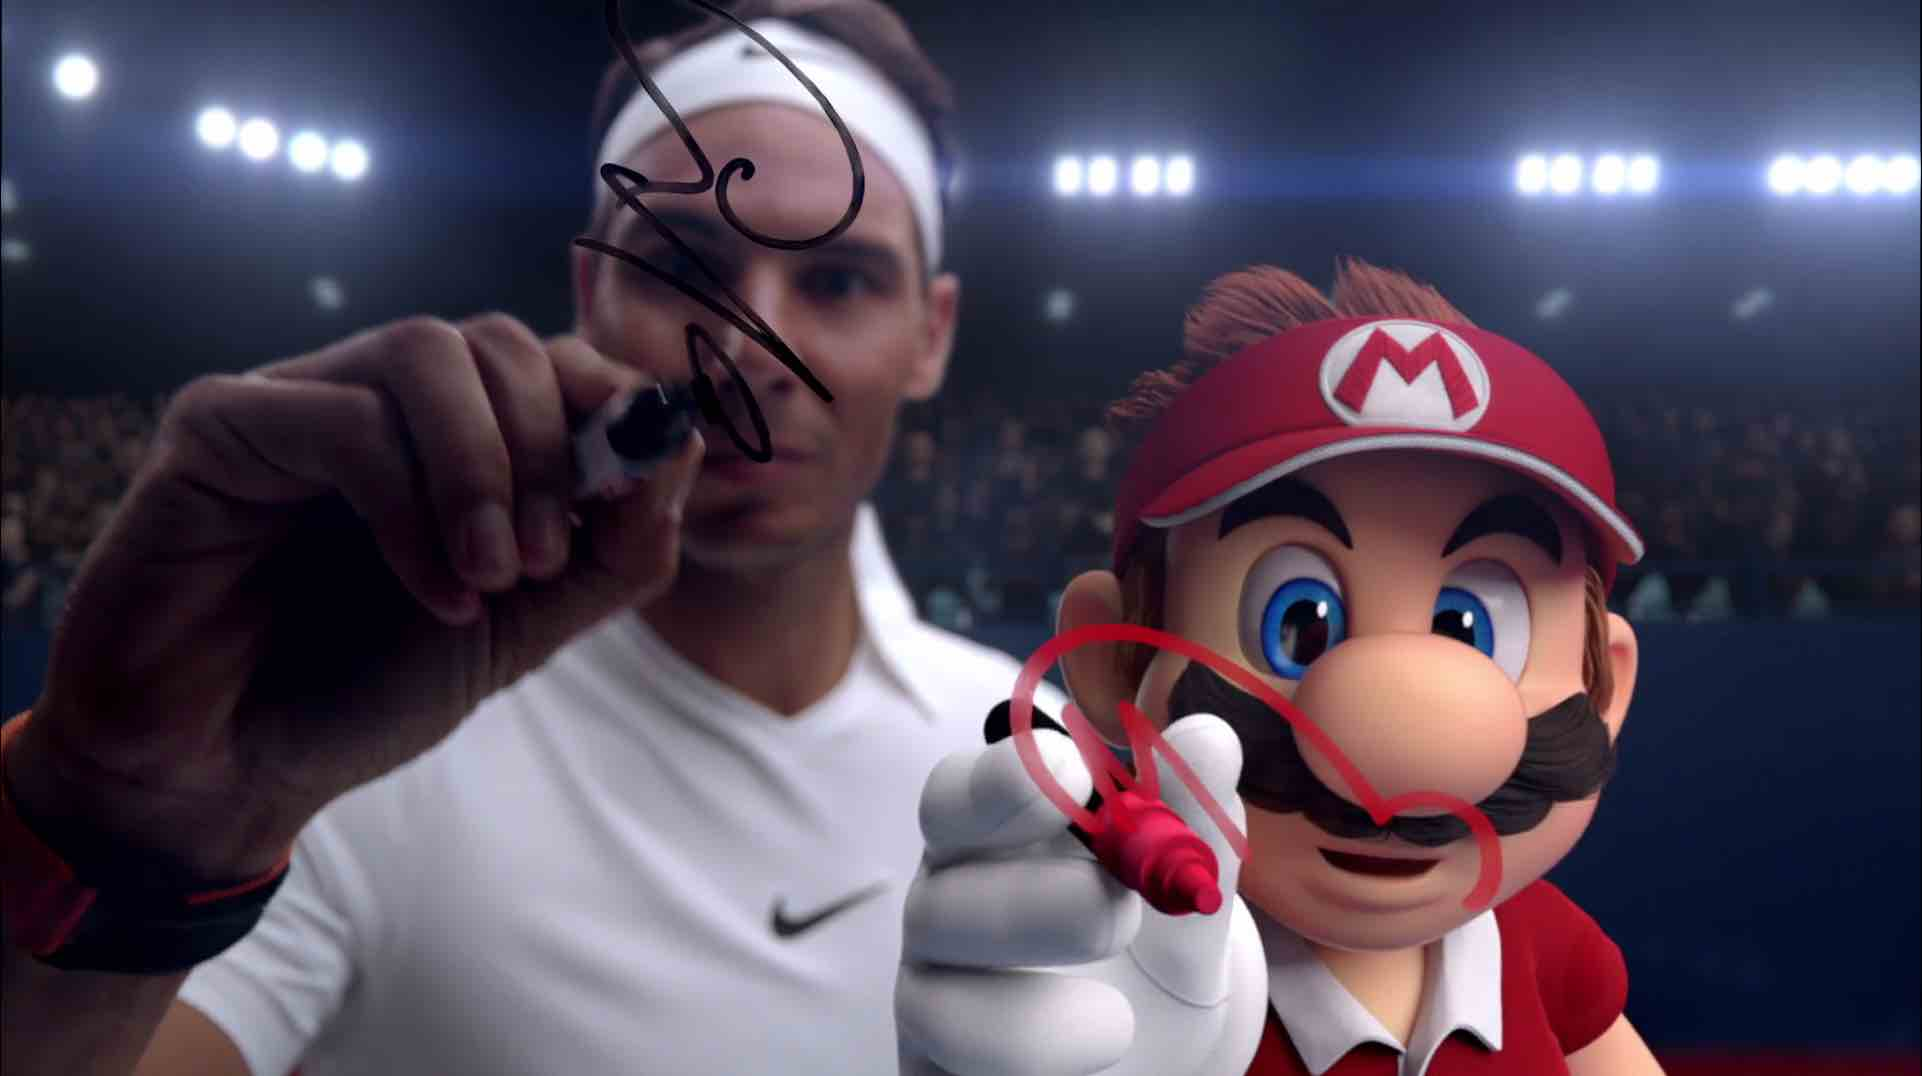 Nintendo Mario Tennis Aces of the Game